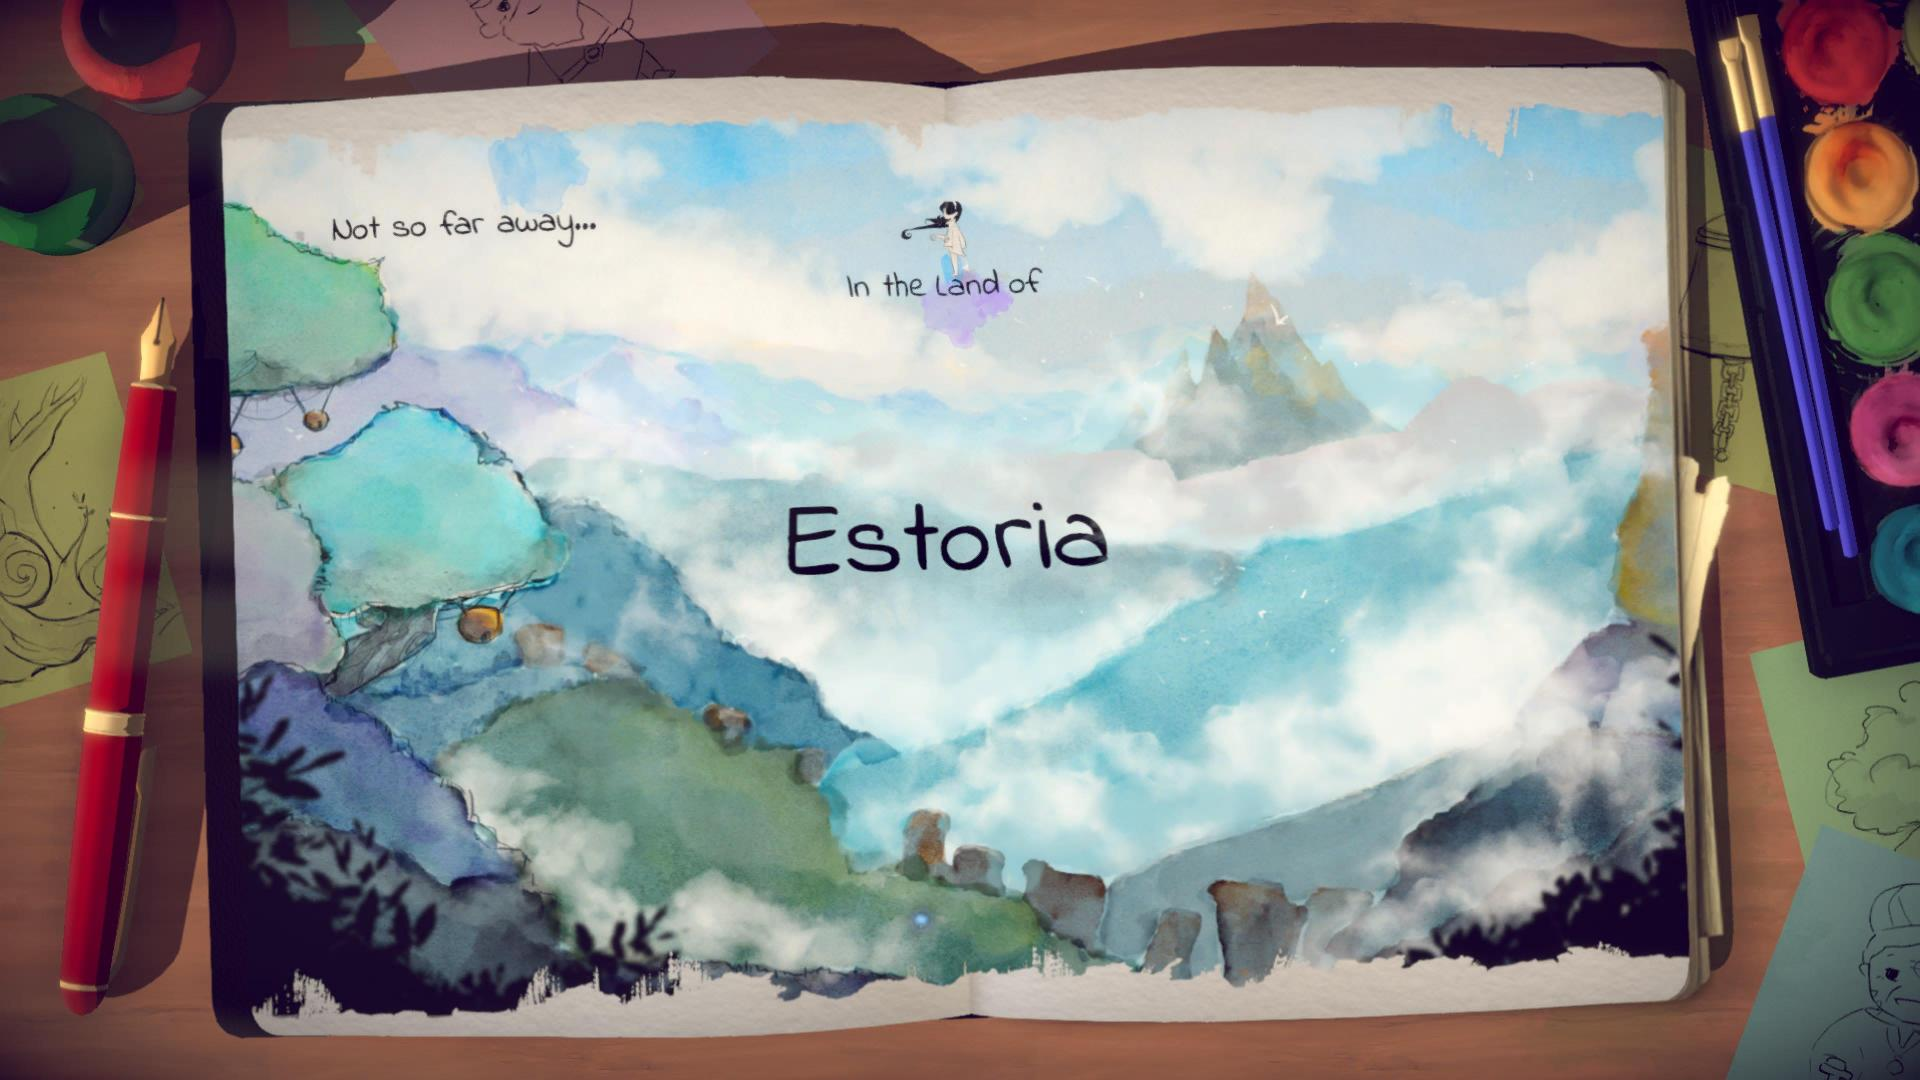 Lost Words: Beyond The Page - recenzja gry, opinia. Estoria